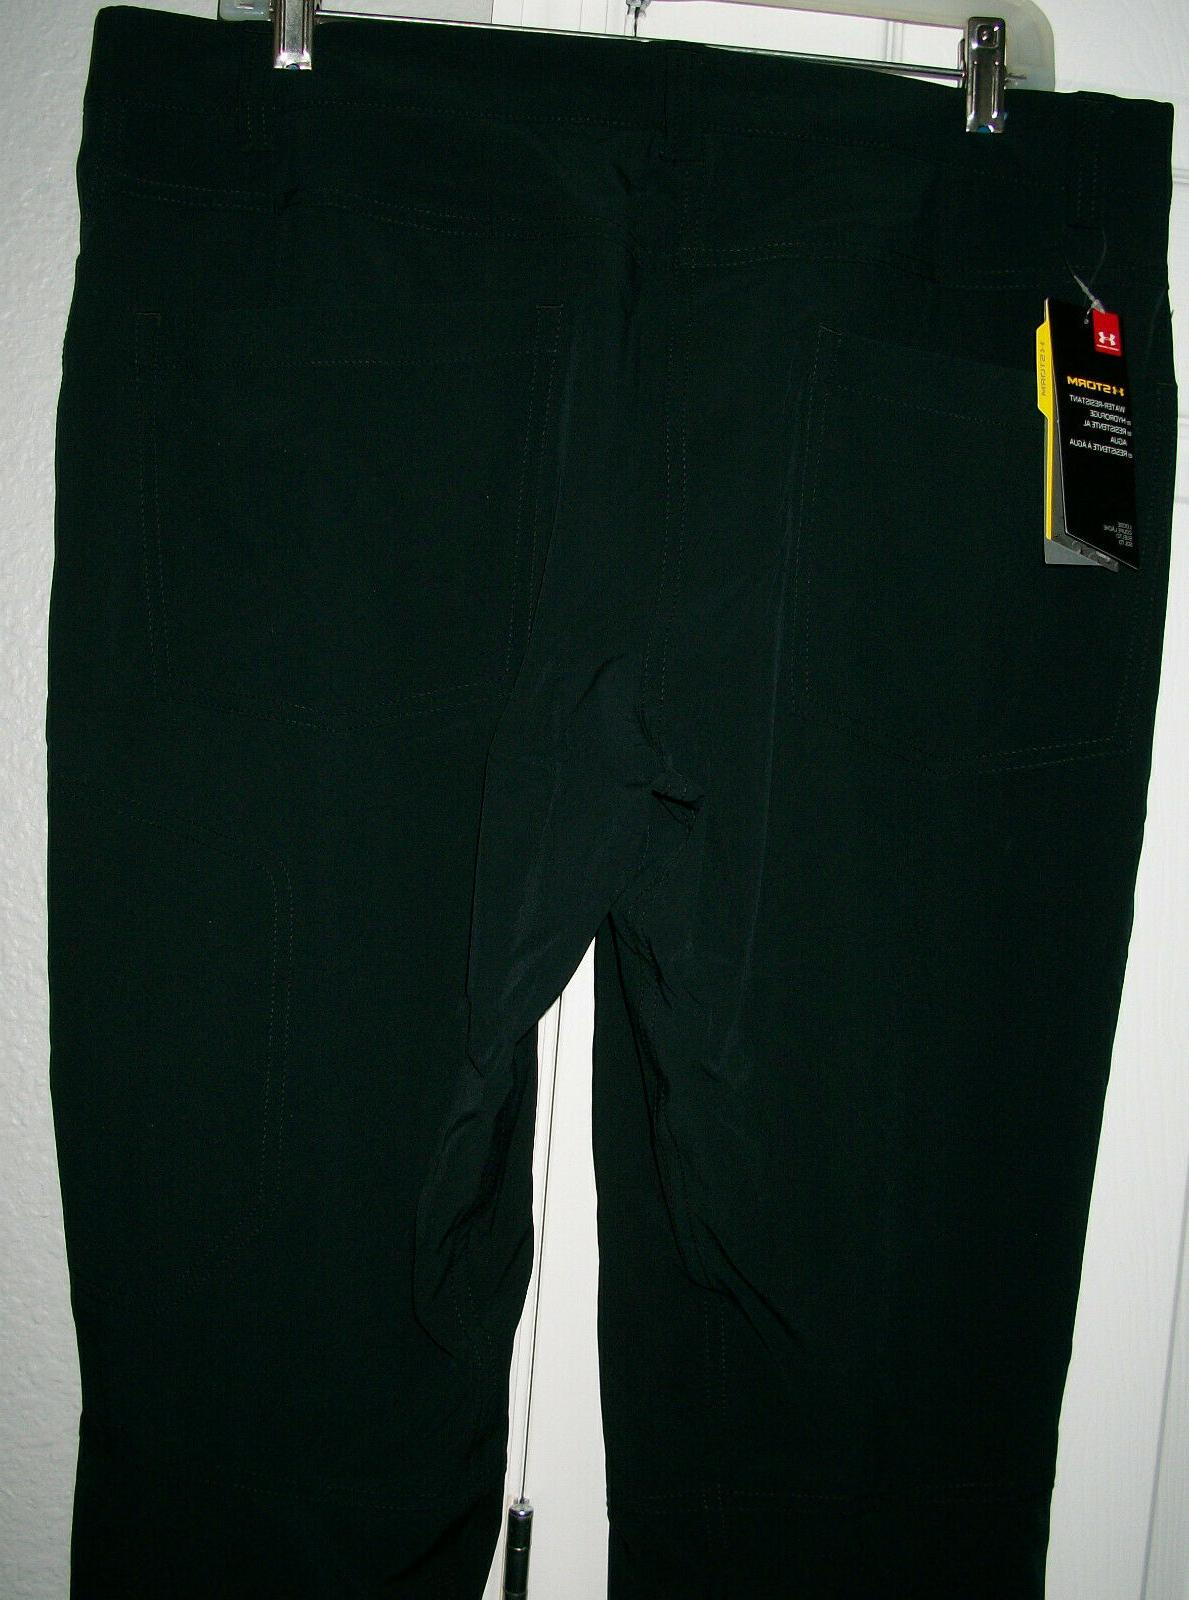 UNDER ARMOUR Loose Fit Water Resistant Pants/Jeans